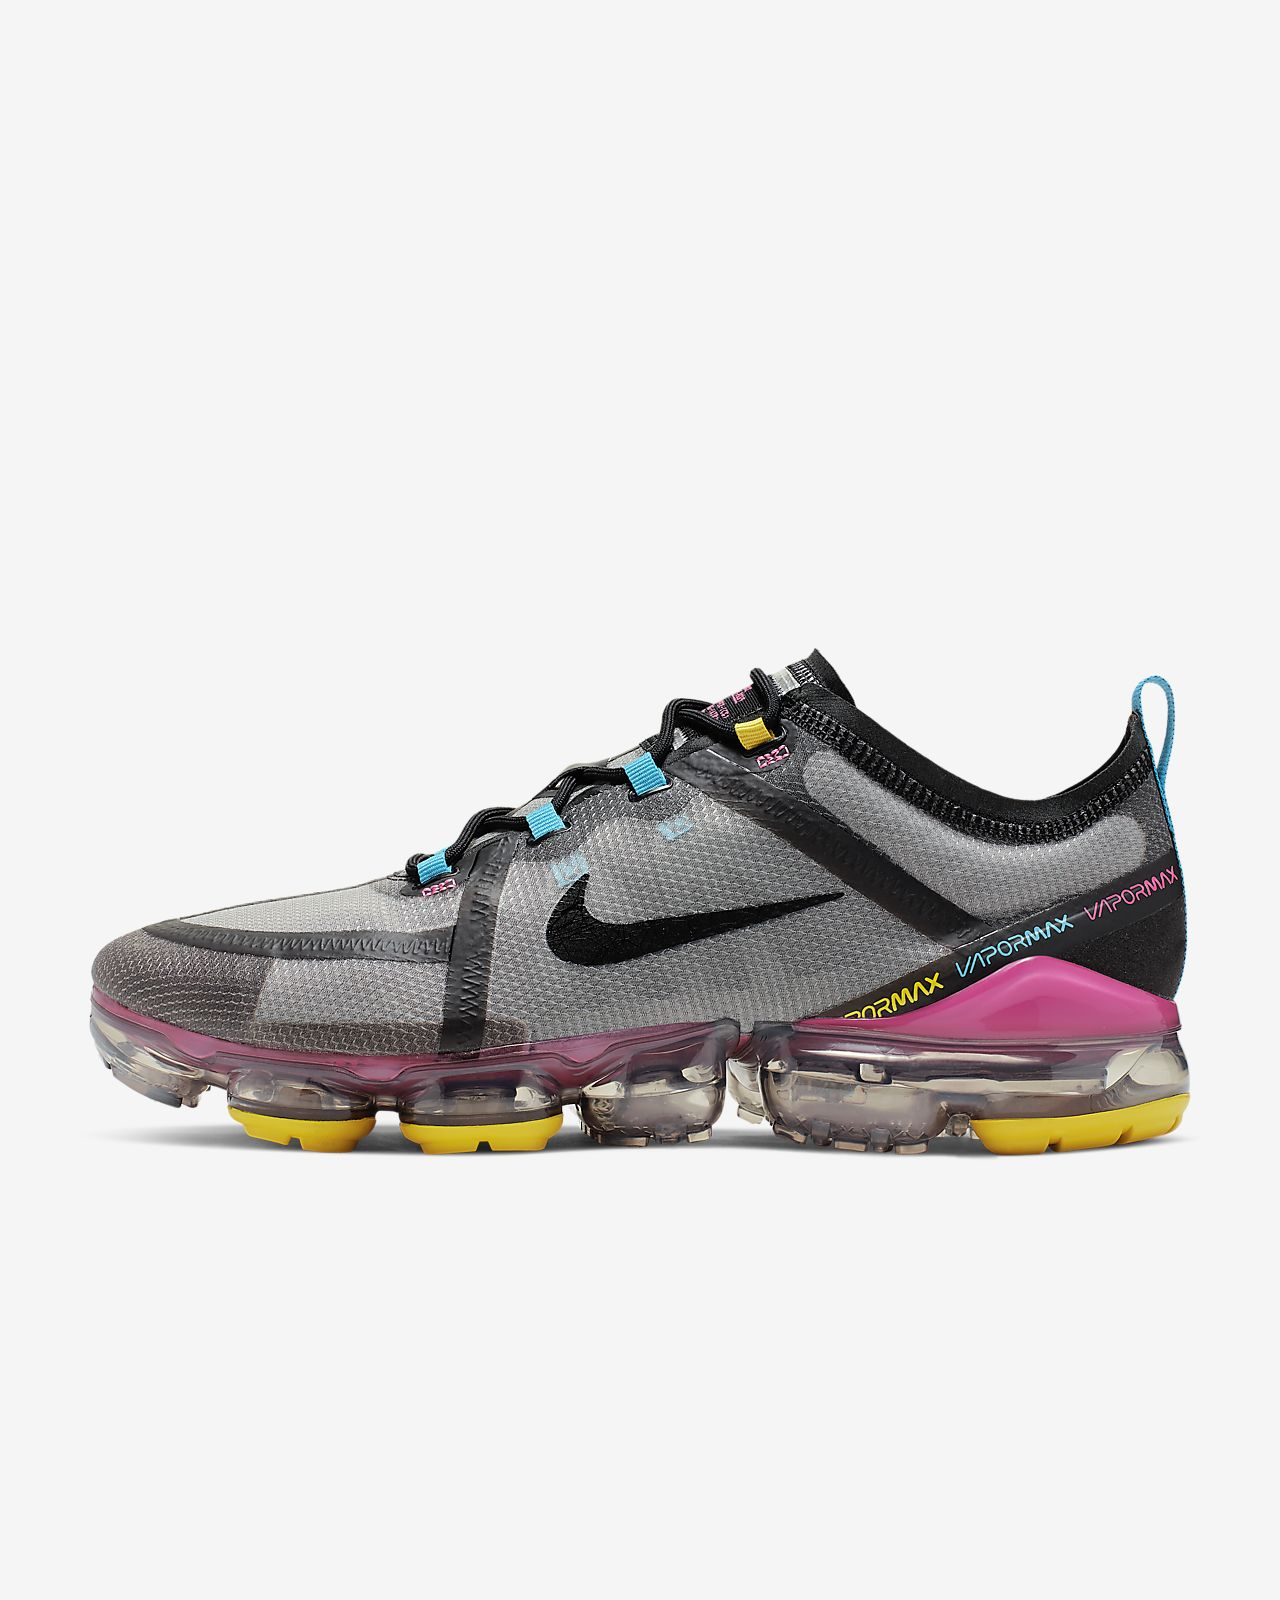 173c2c3933 Nike Air VaporMax 2019 Men's Shoe. Nike.com